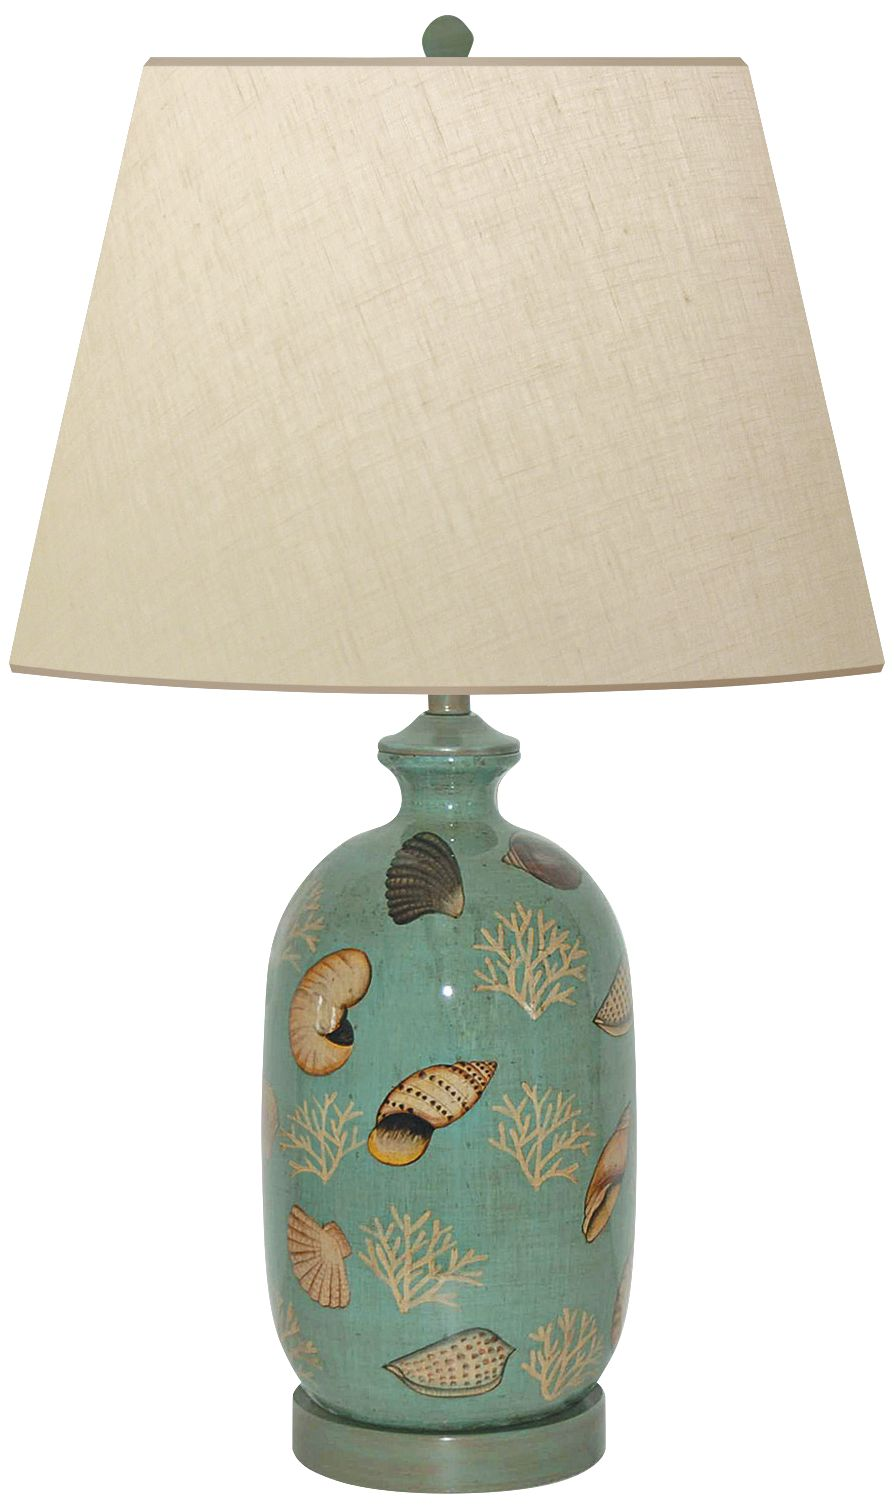 Seafoam Shell Hand Painted Porcelain Table Lamp